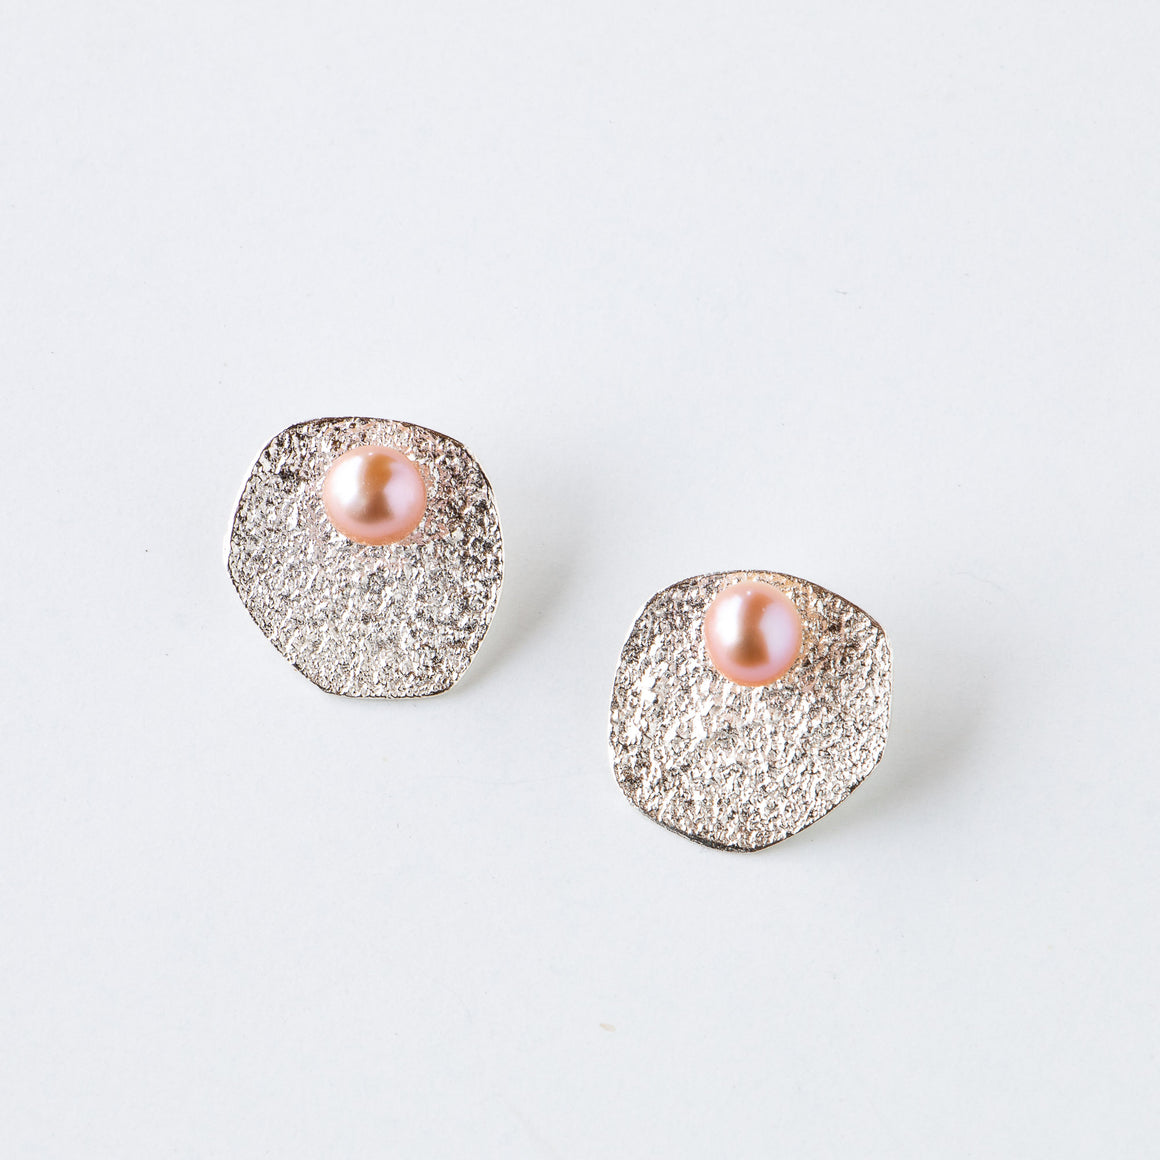 Shown on Model - Flora - Silver & Pink Pearl Ear Jacket Earrings - Sold by Chic & Basta